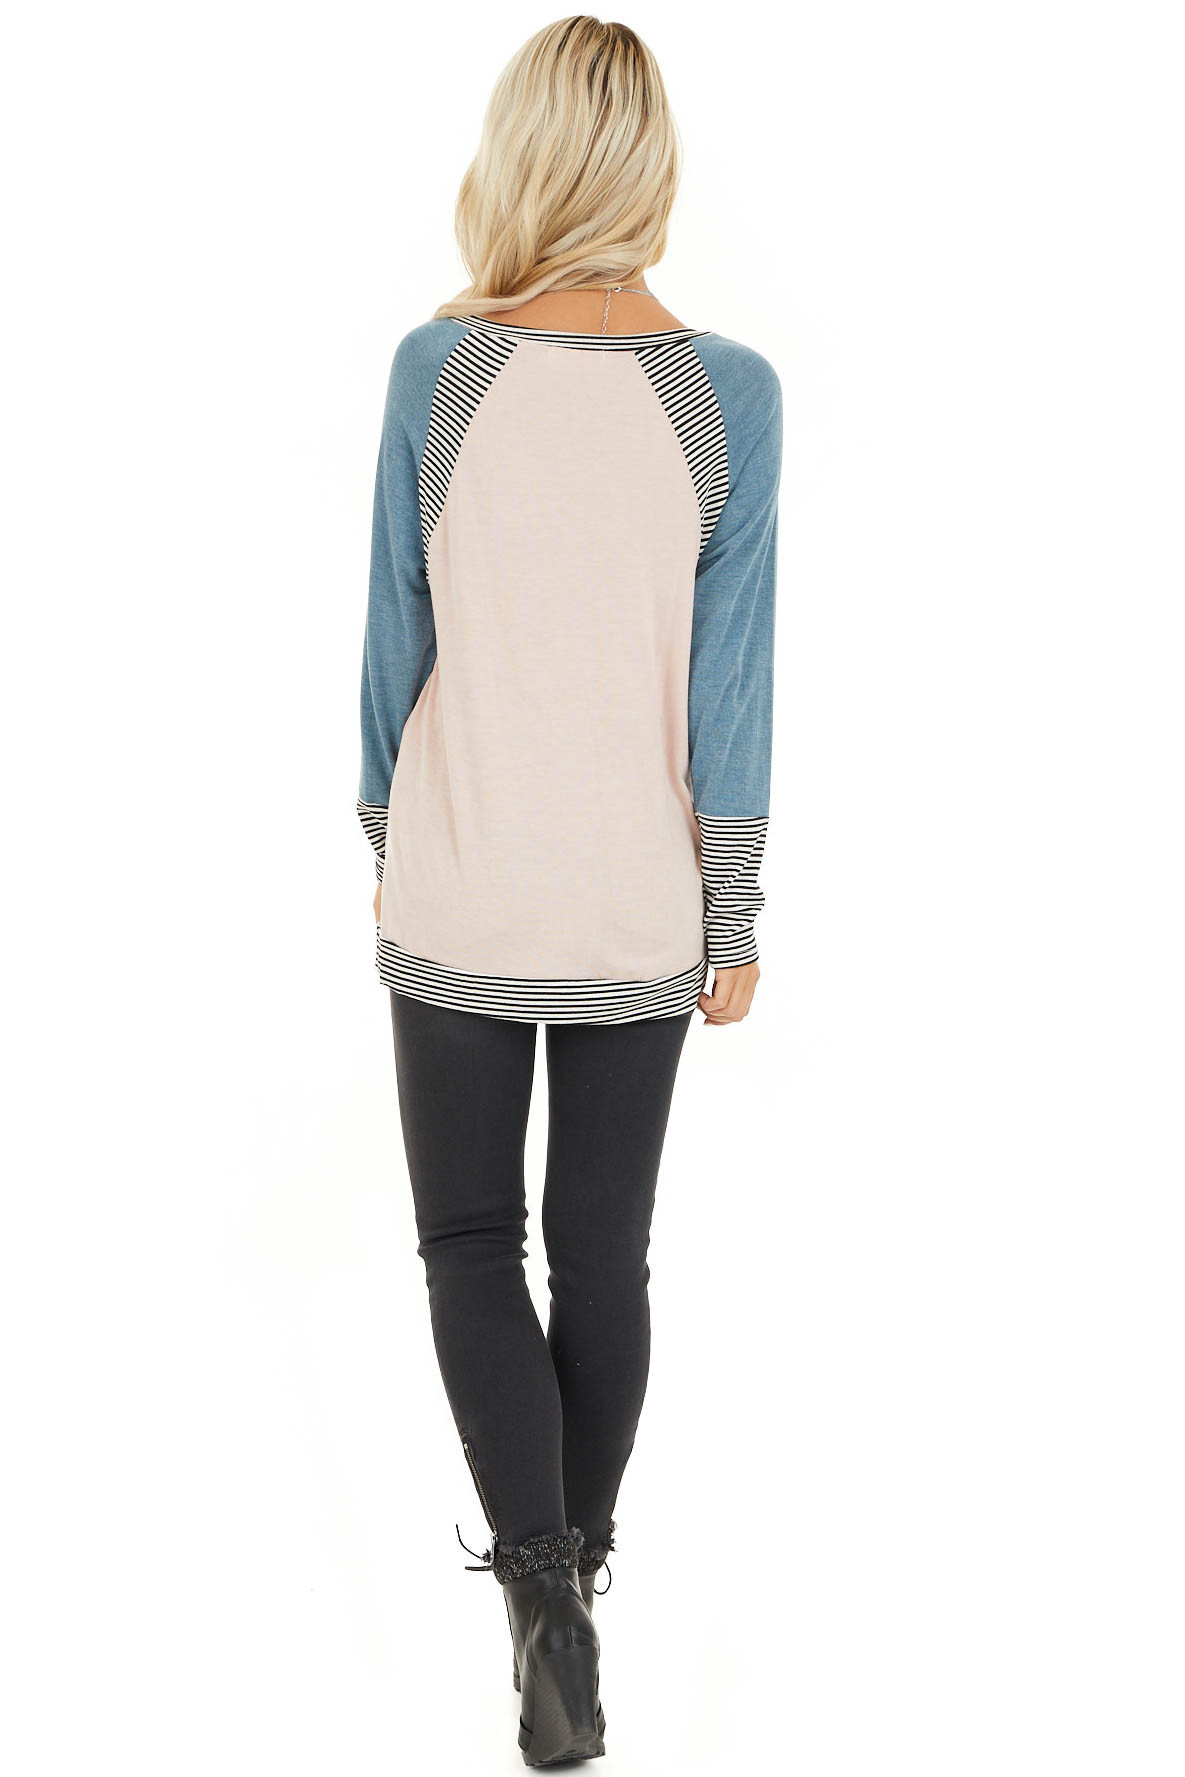 Blush and Teal Long Sleeve Top with Striped Contrast back full body